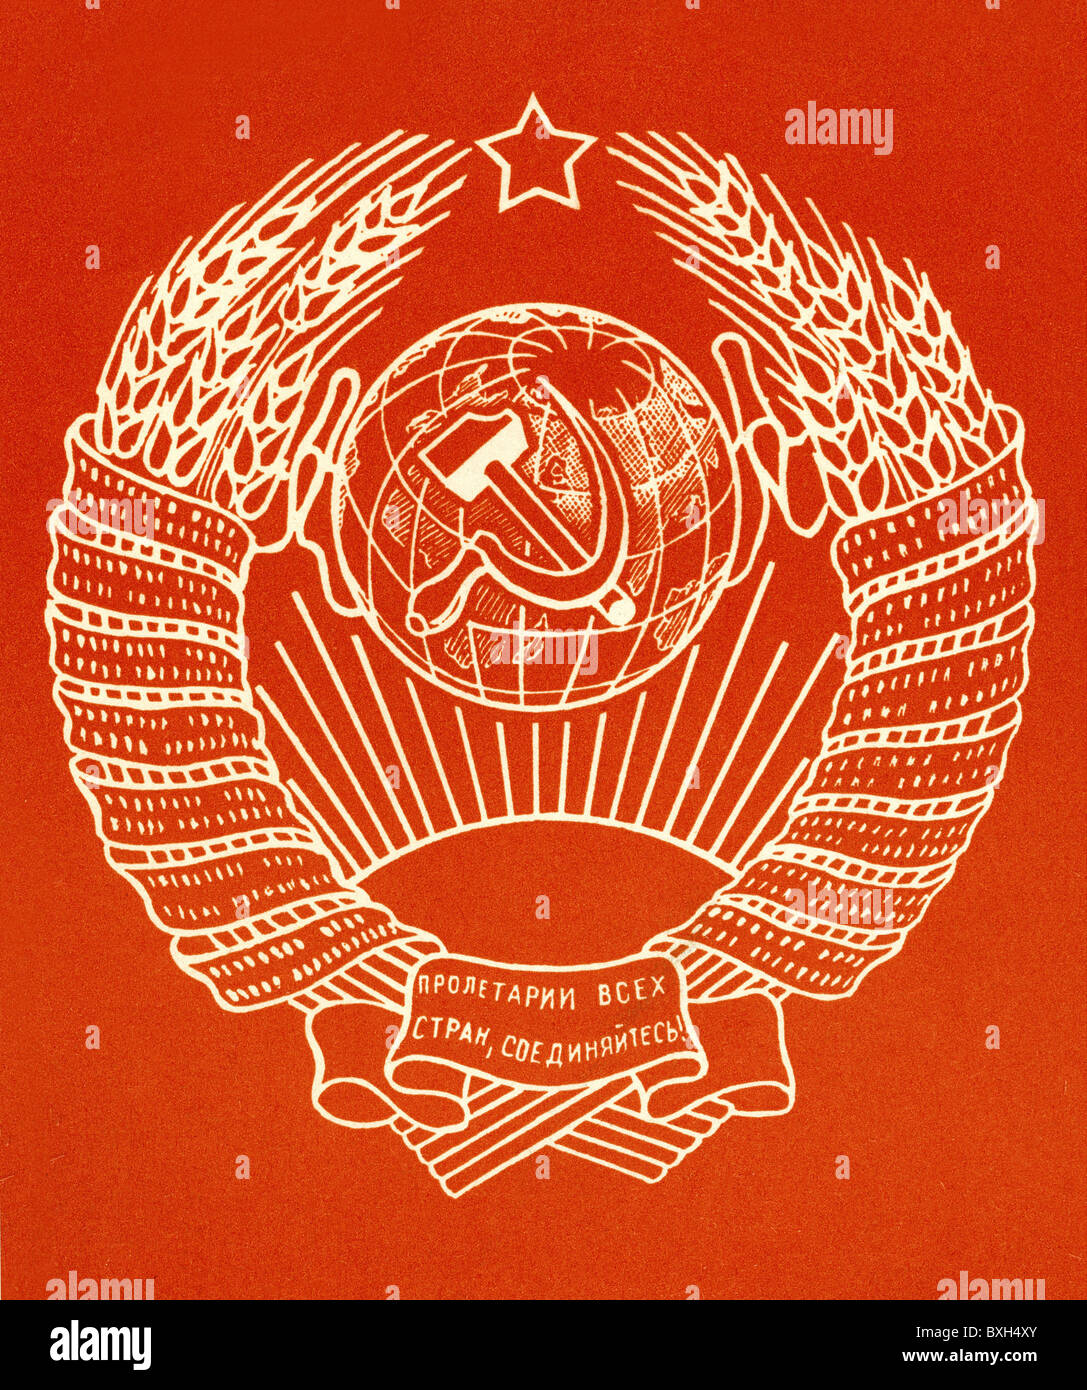 Symbols National Coat Of Arms Union Of Socialist Soviet Republics